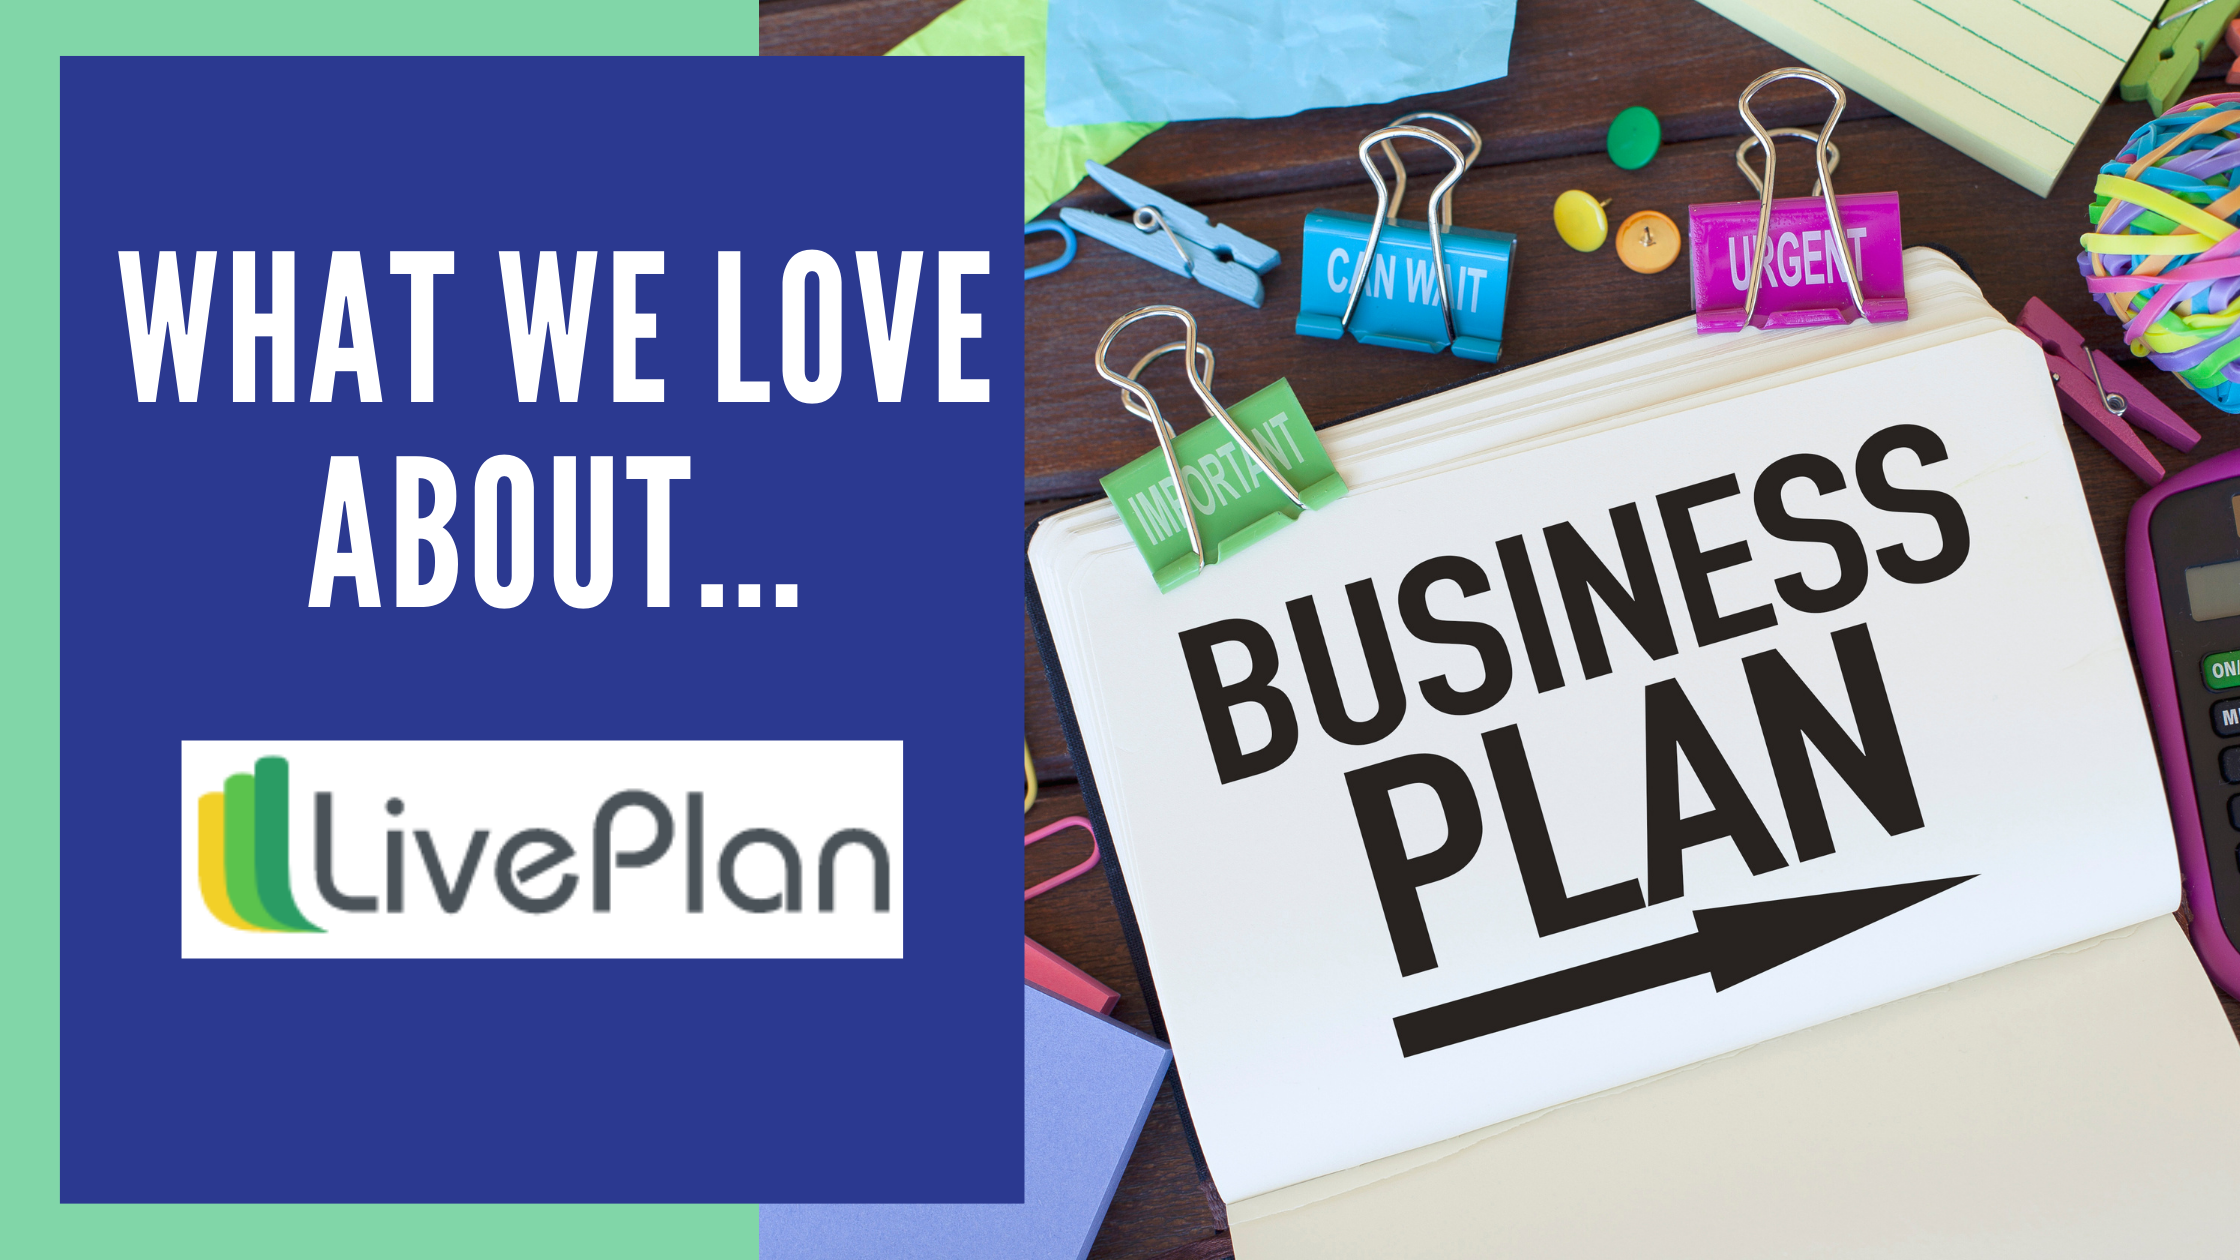 What We Love About...LivePlan